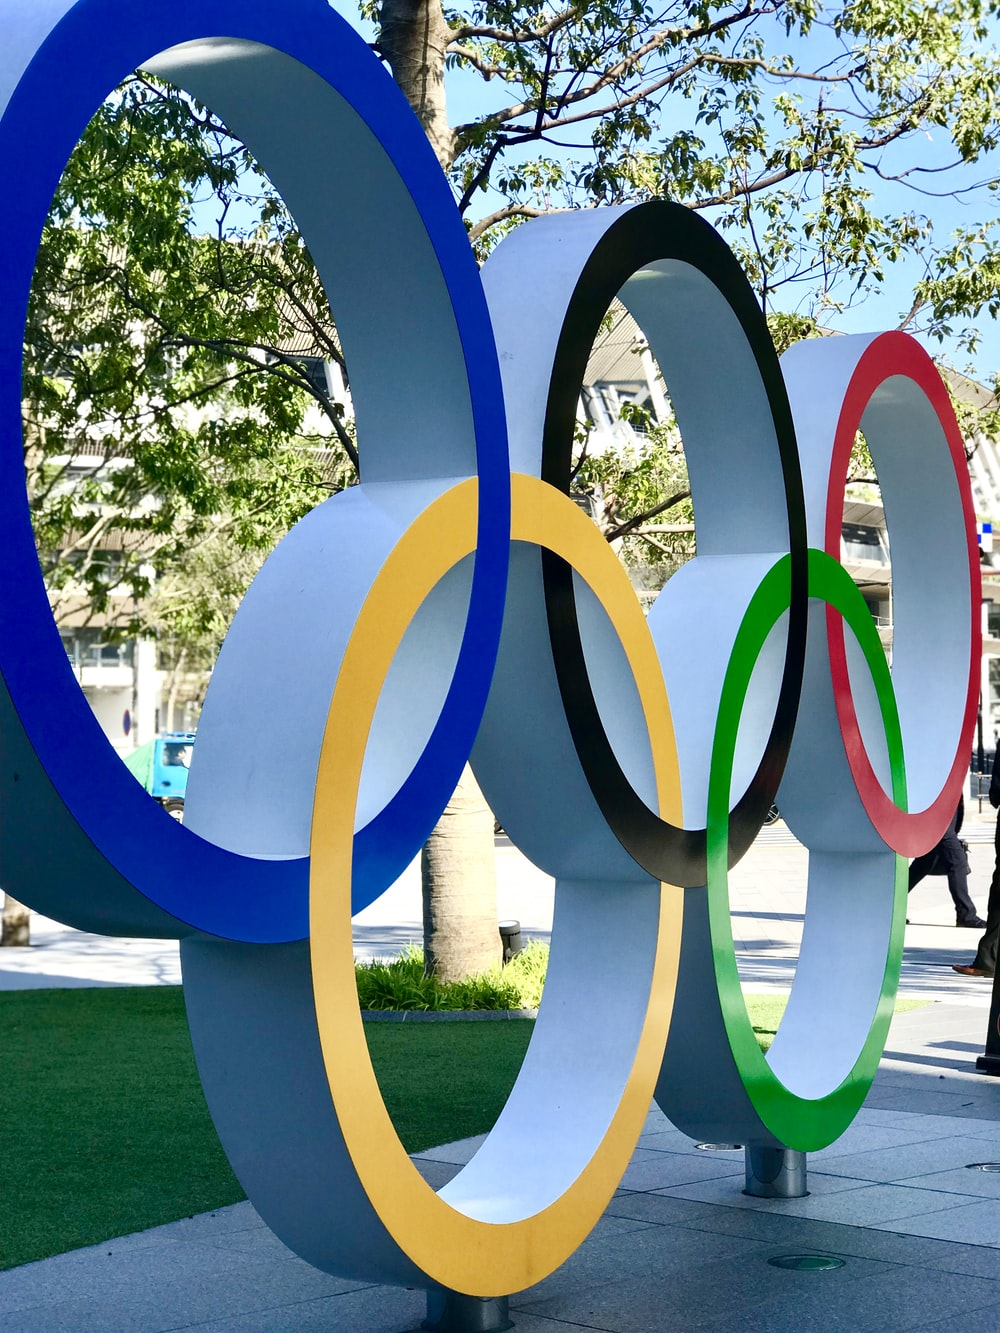 Picture1 - What You Should Know About the 2021 Olympics